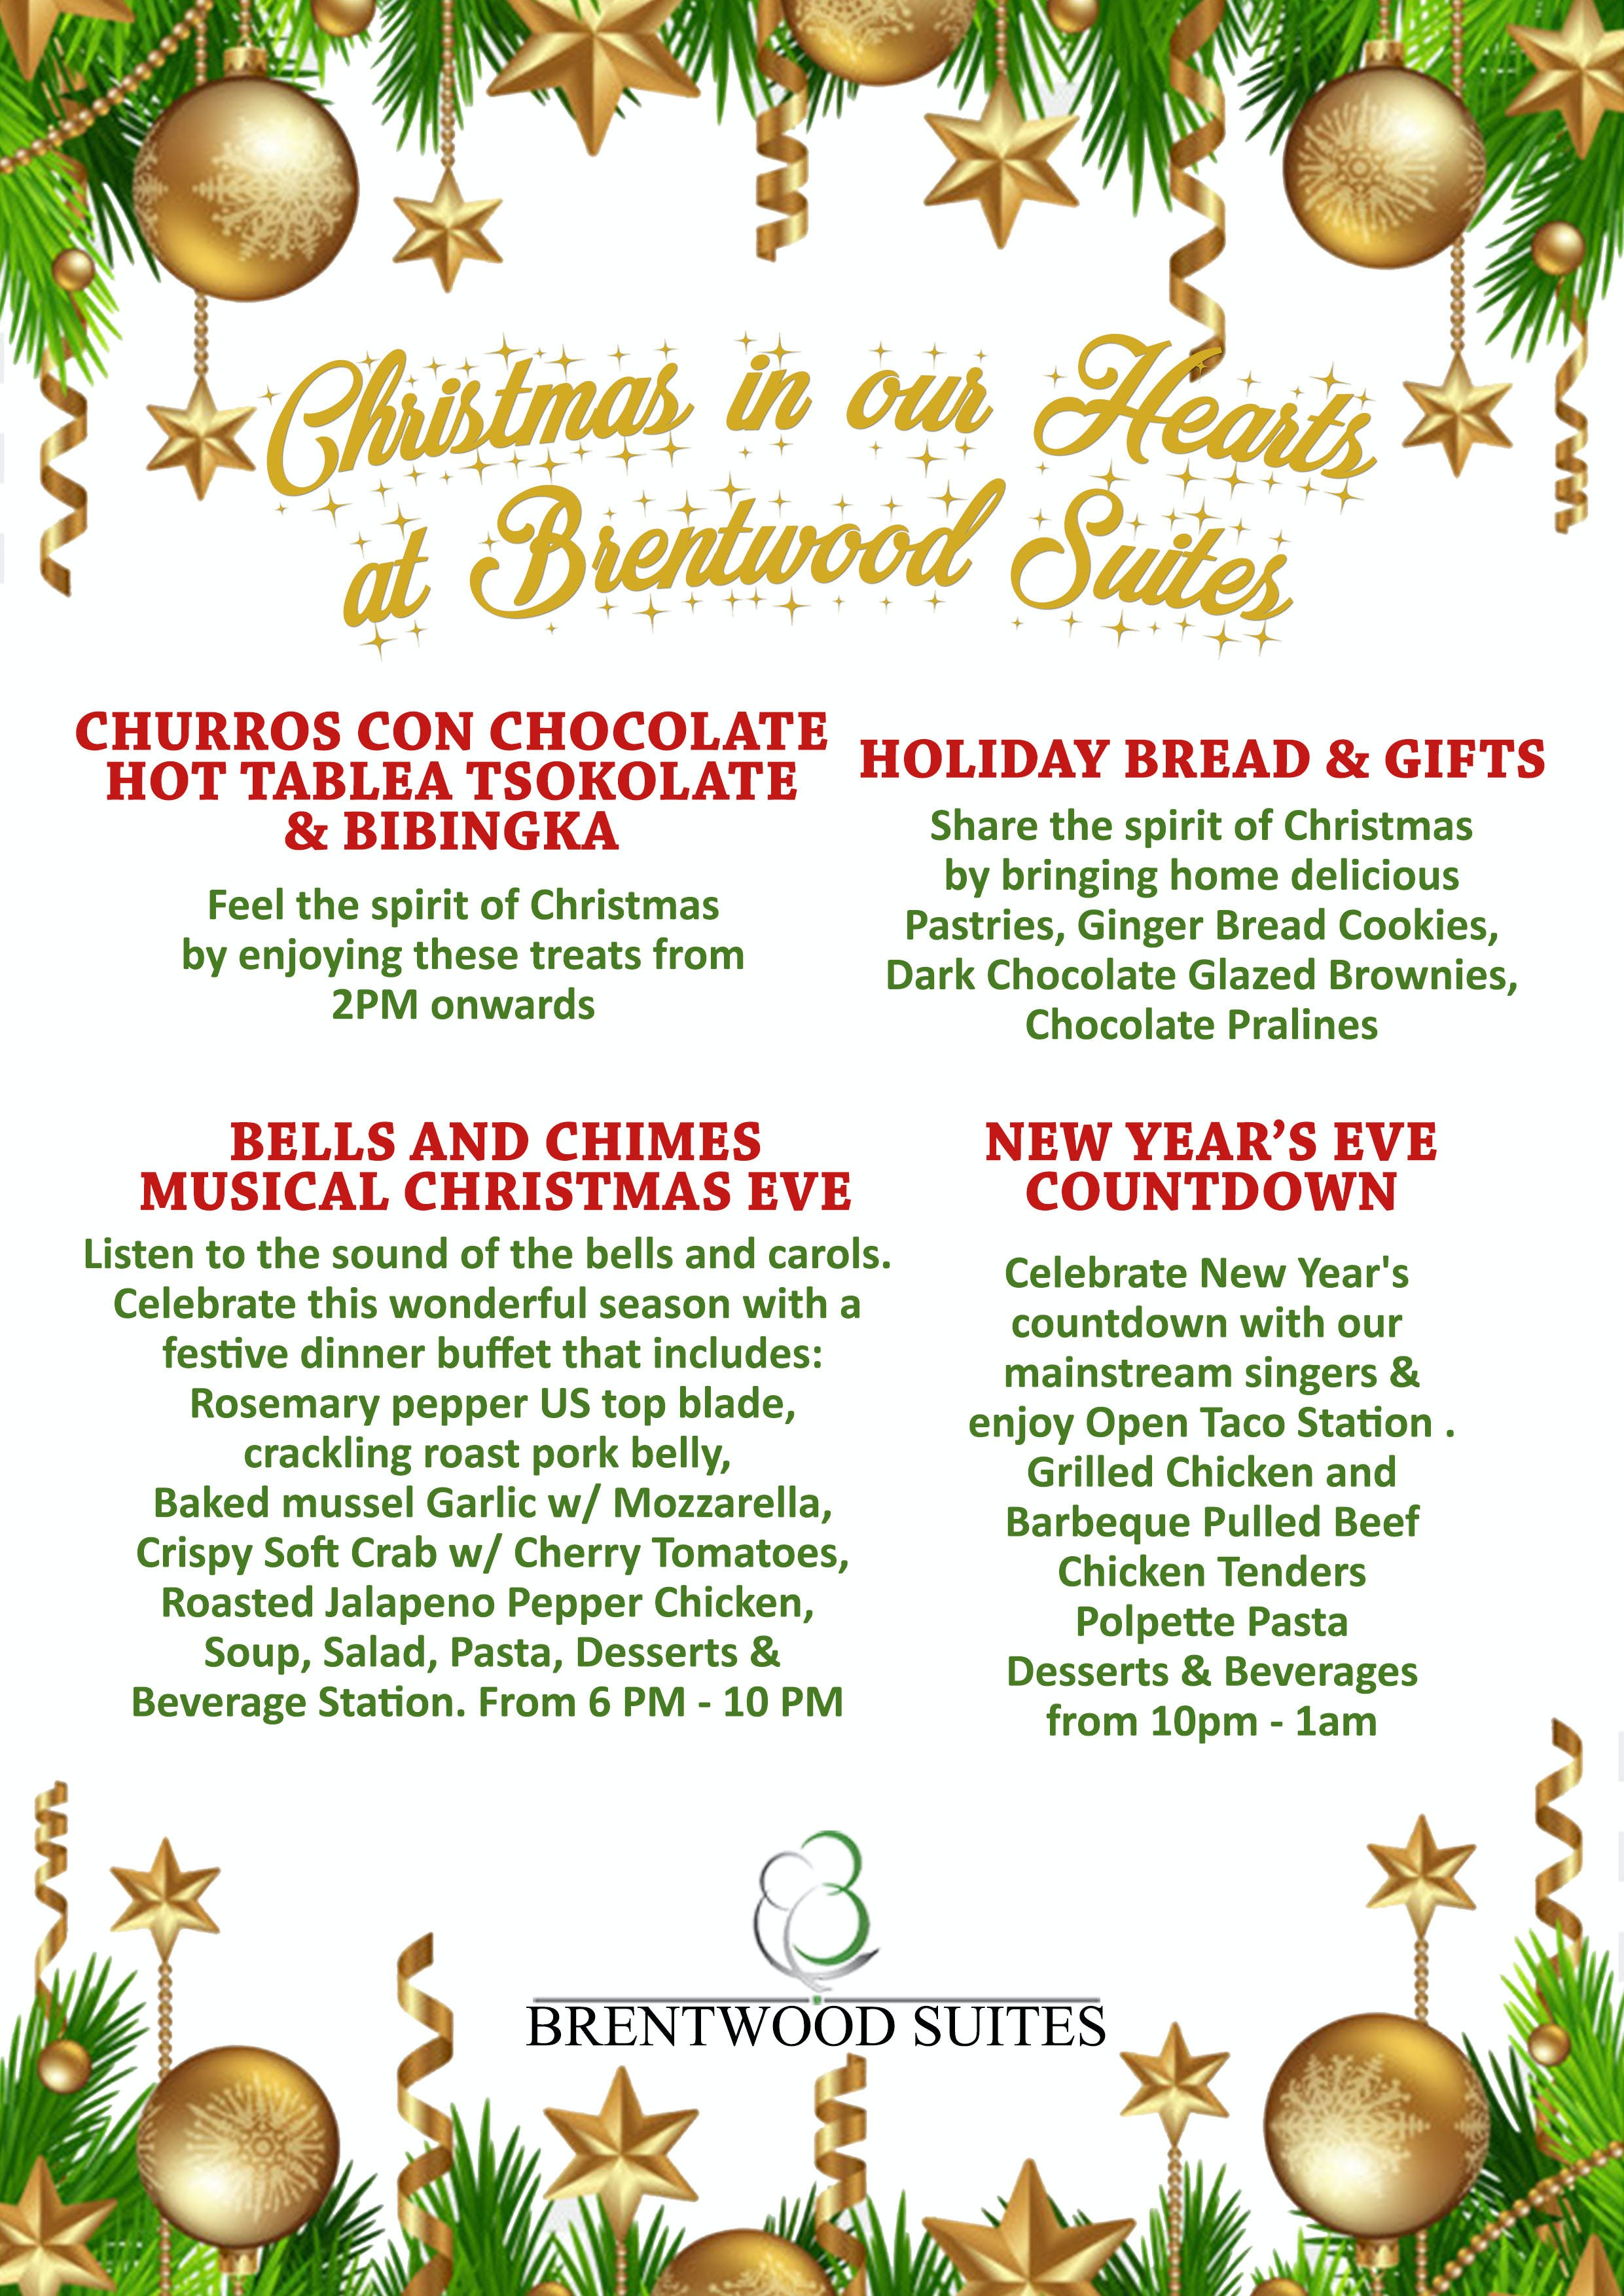 Christmas in our Hearts at Brentwood Suites | Brentwood Suites